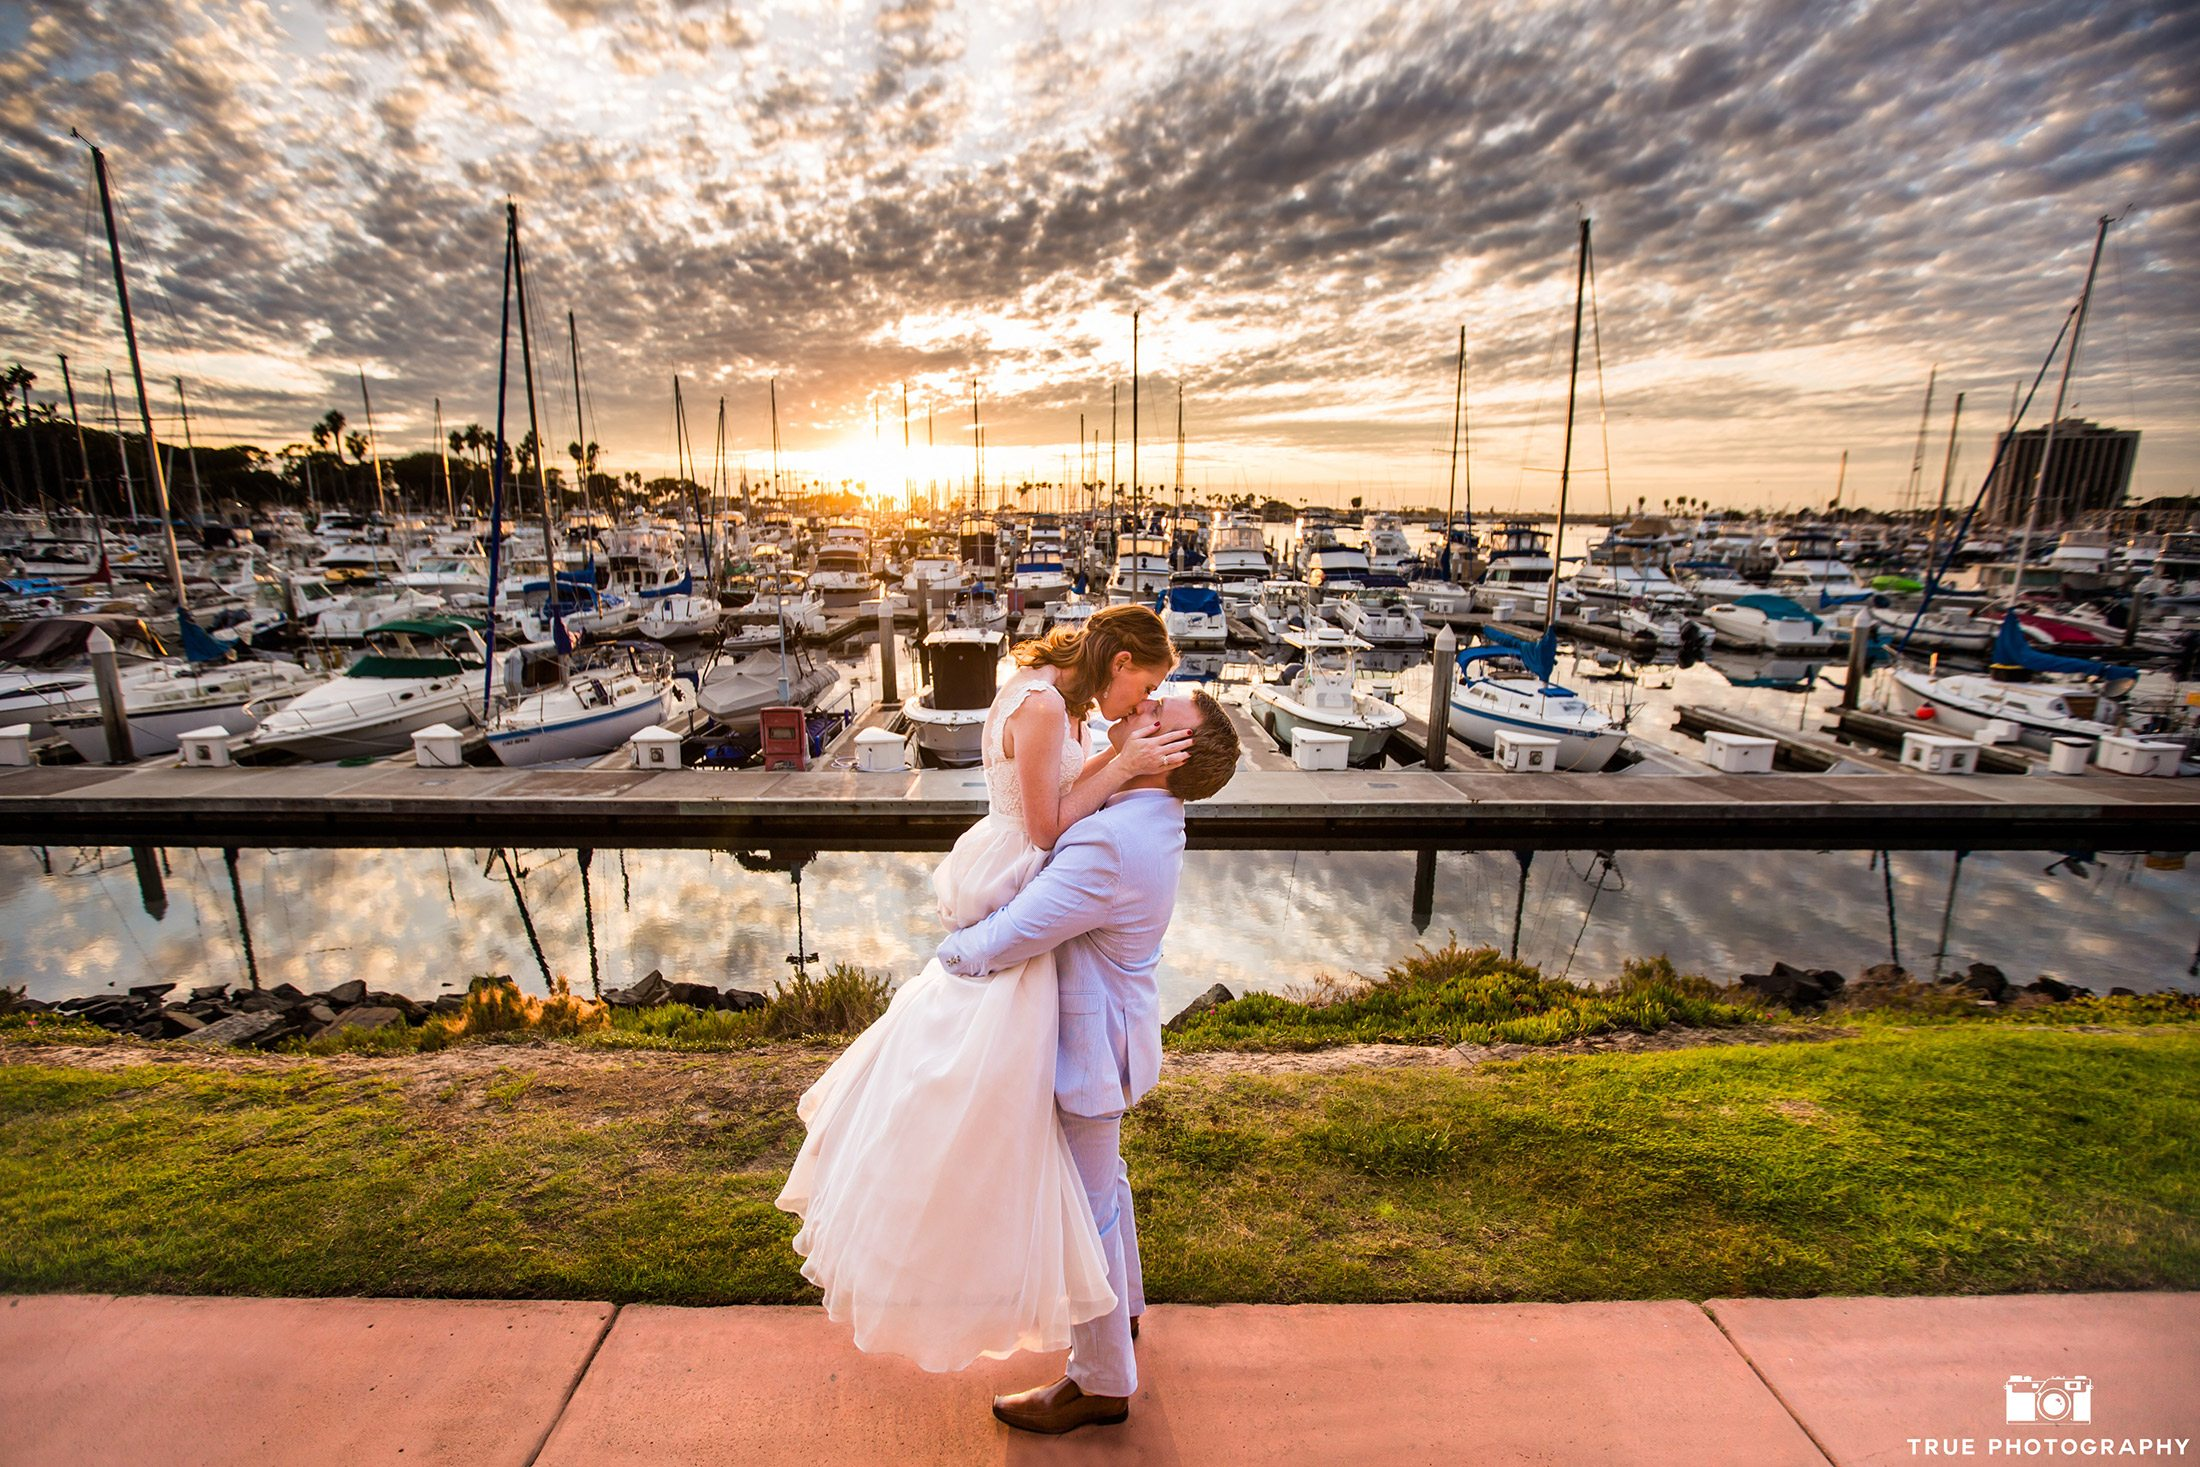 Candid photo of a wedding couple at sunset